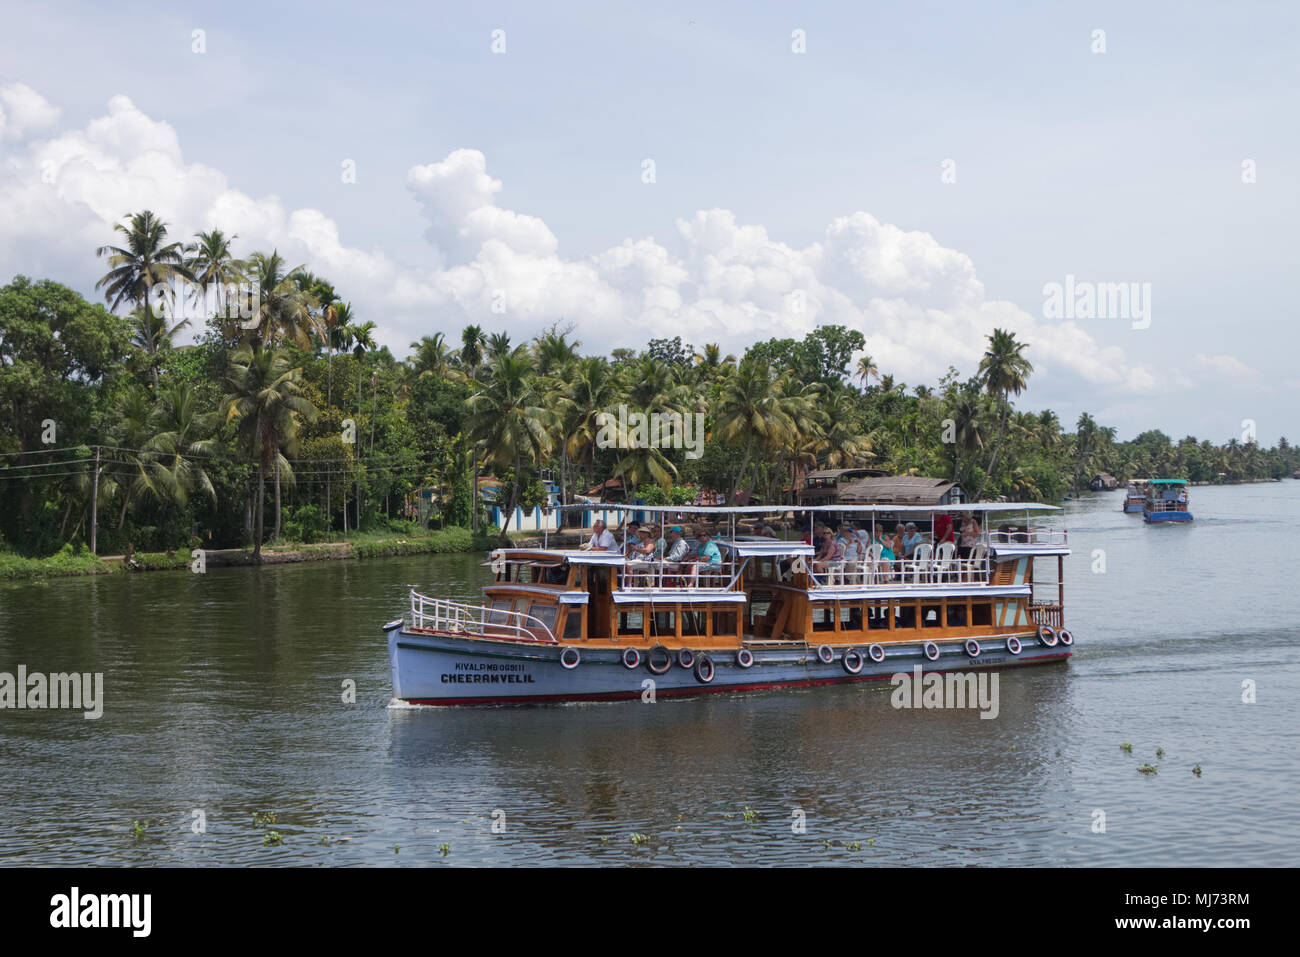 Alappuzha, Kerala / India - April 15 2018: A traditional house boat is carrying tourists on the waterways of Alappuzha. Stock Photo